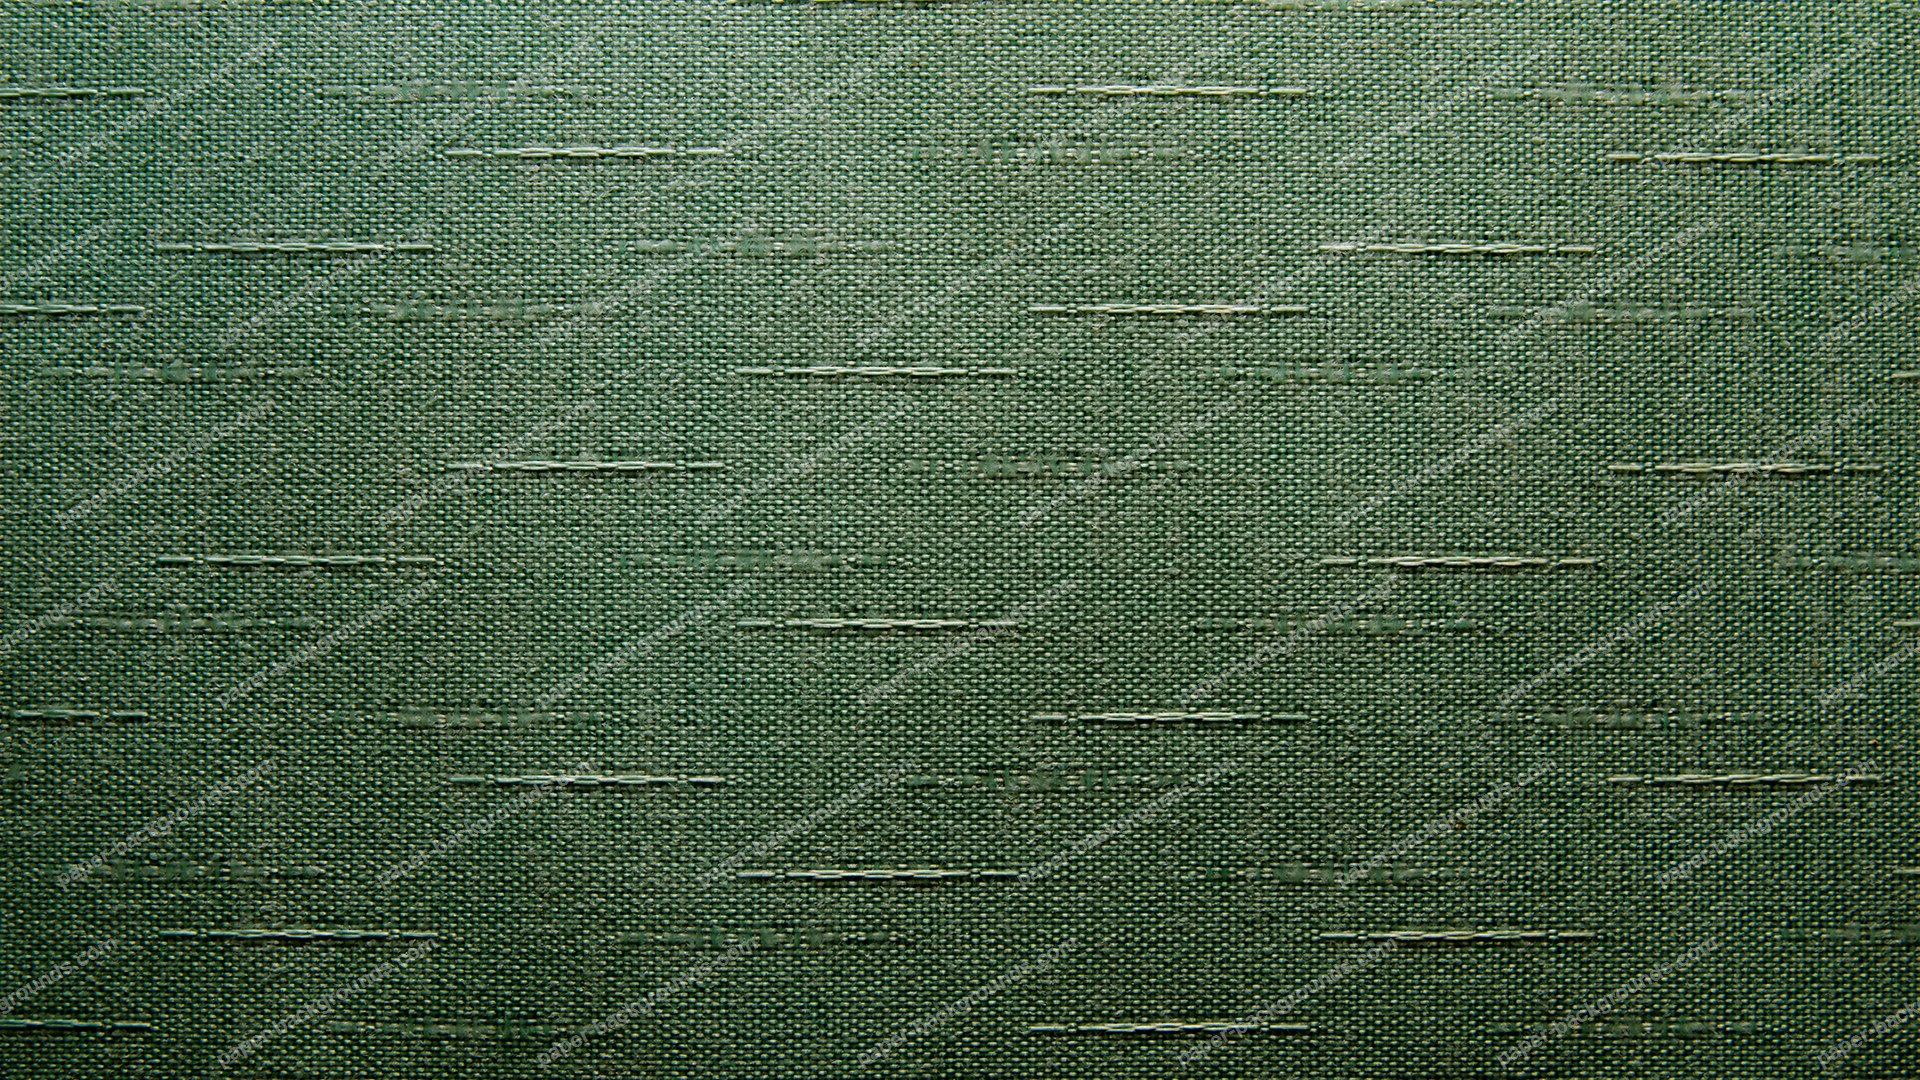 Vintage Green Canvas Texture HD 1920 x 1080p